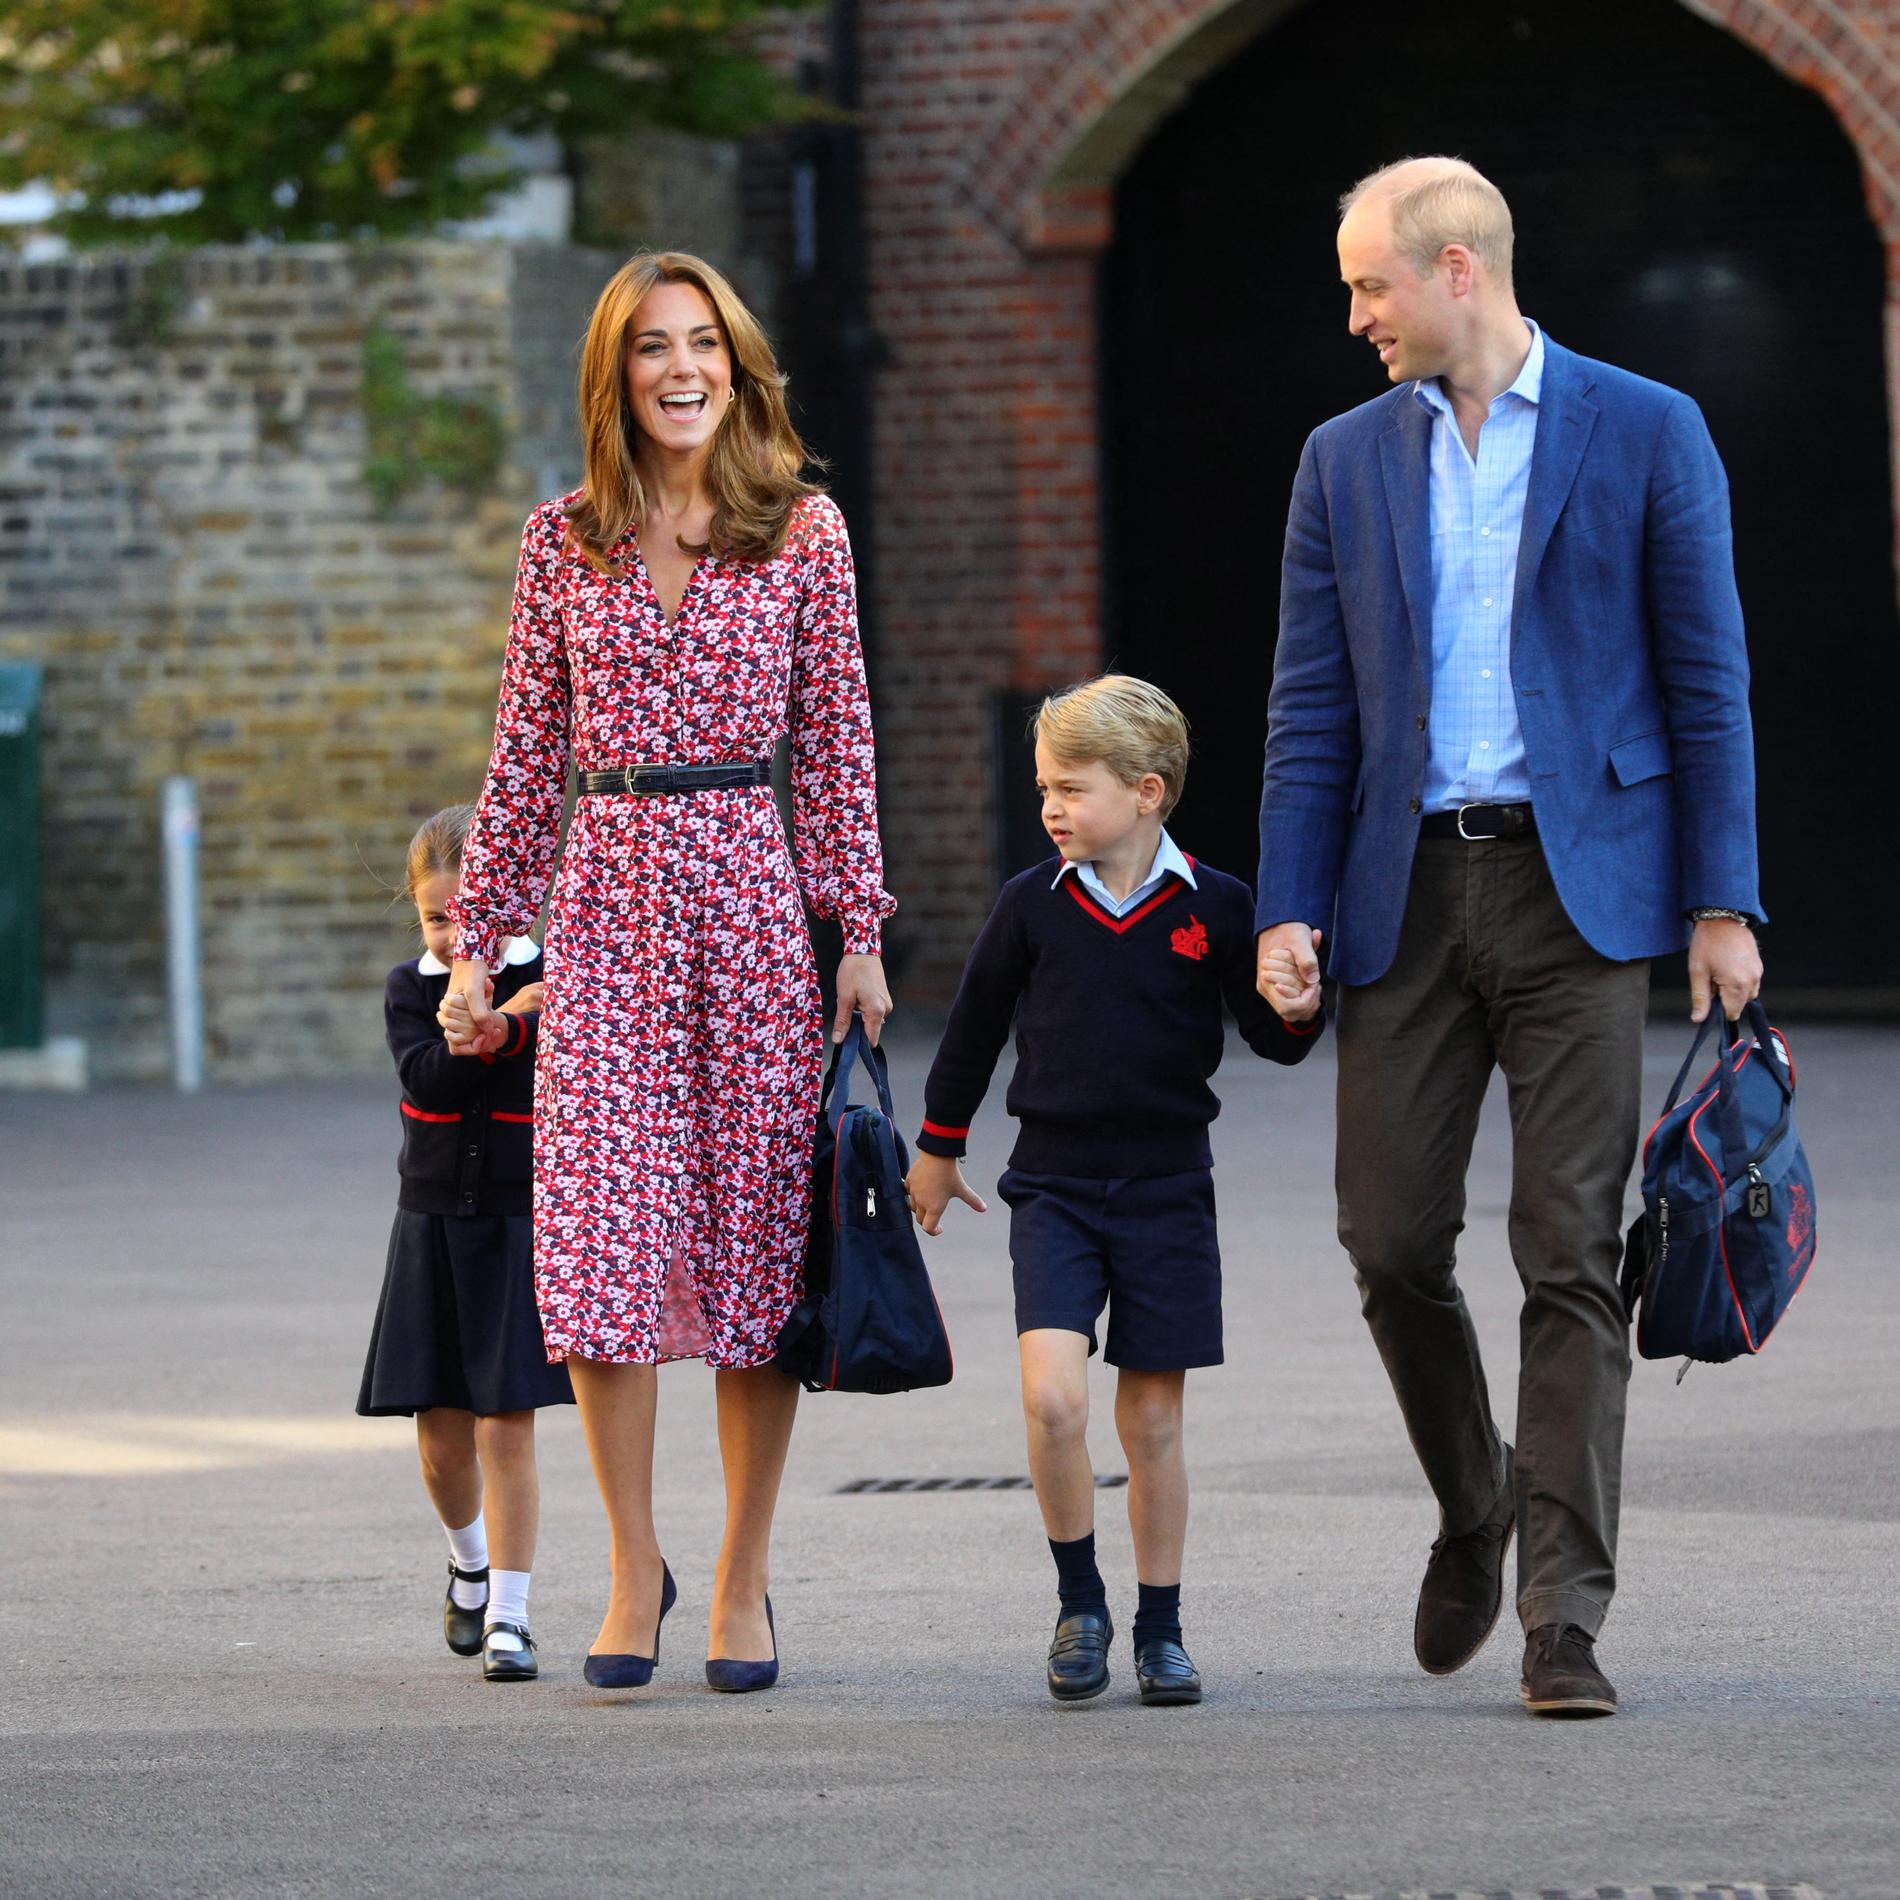 La timide rentrée des classes de la princesse Charlotte de Cambridge